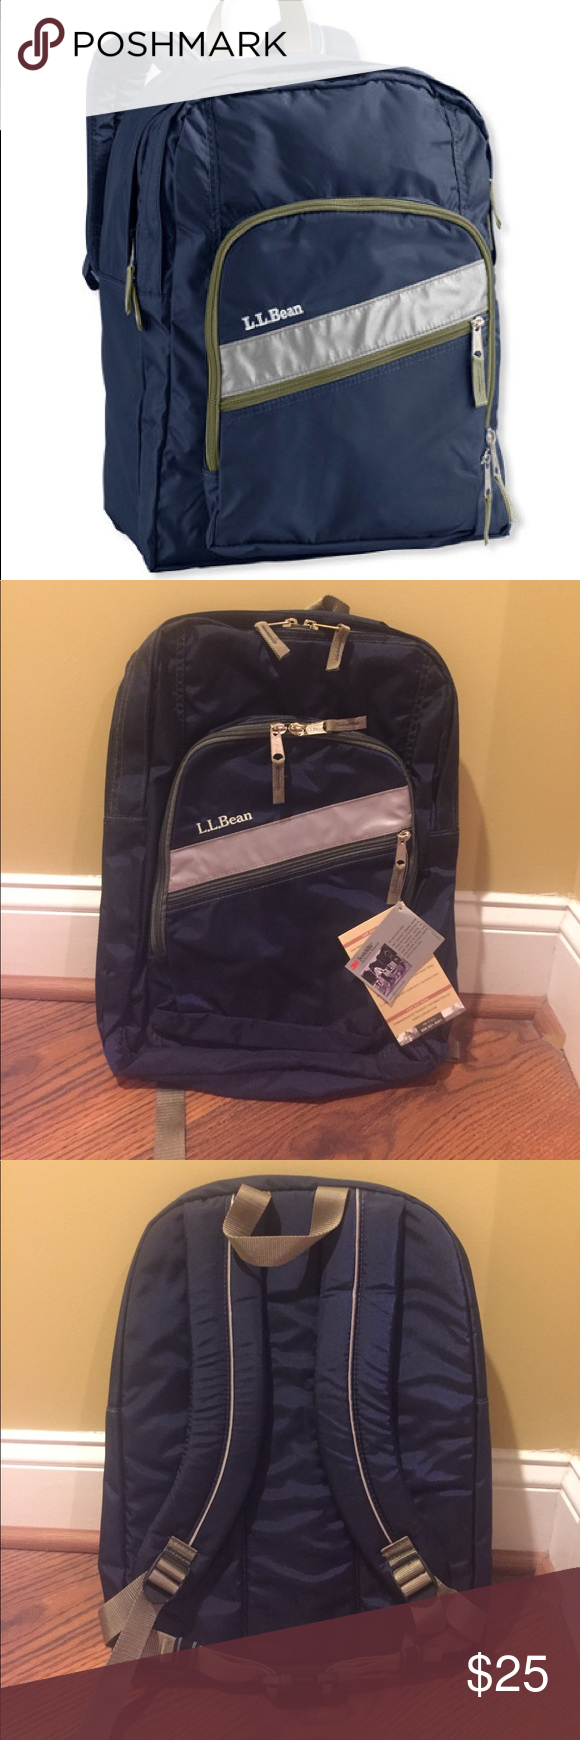 L L Bean Deluxe Book Bag In Navy Blue L L Bean Deluxe Book Bag Brand New With Tags Perfect For The Upcoming School Year Clothes Design Fashion Design Fashion